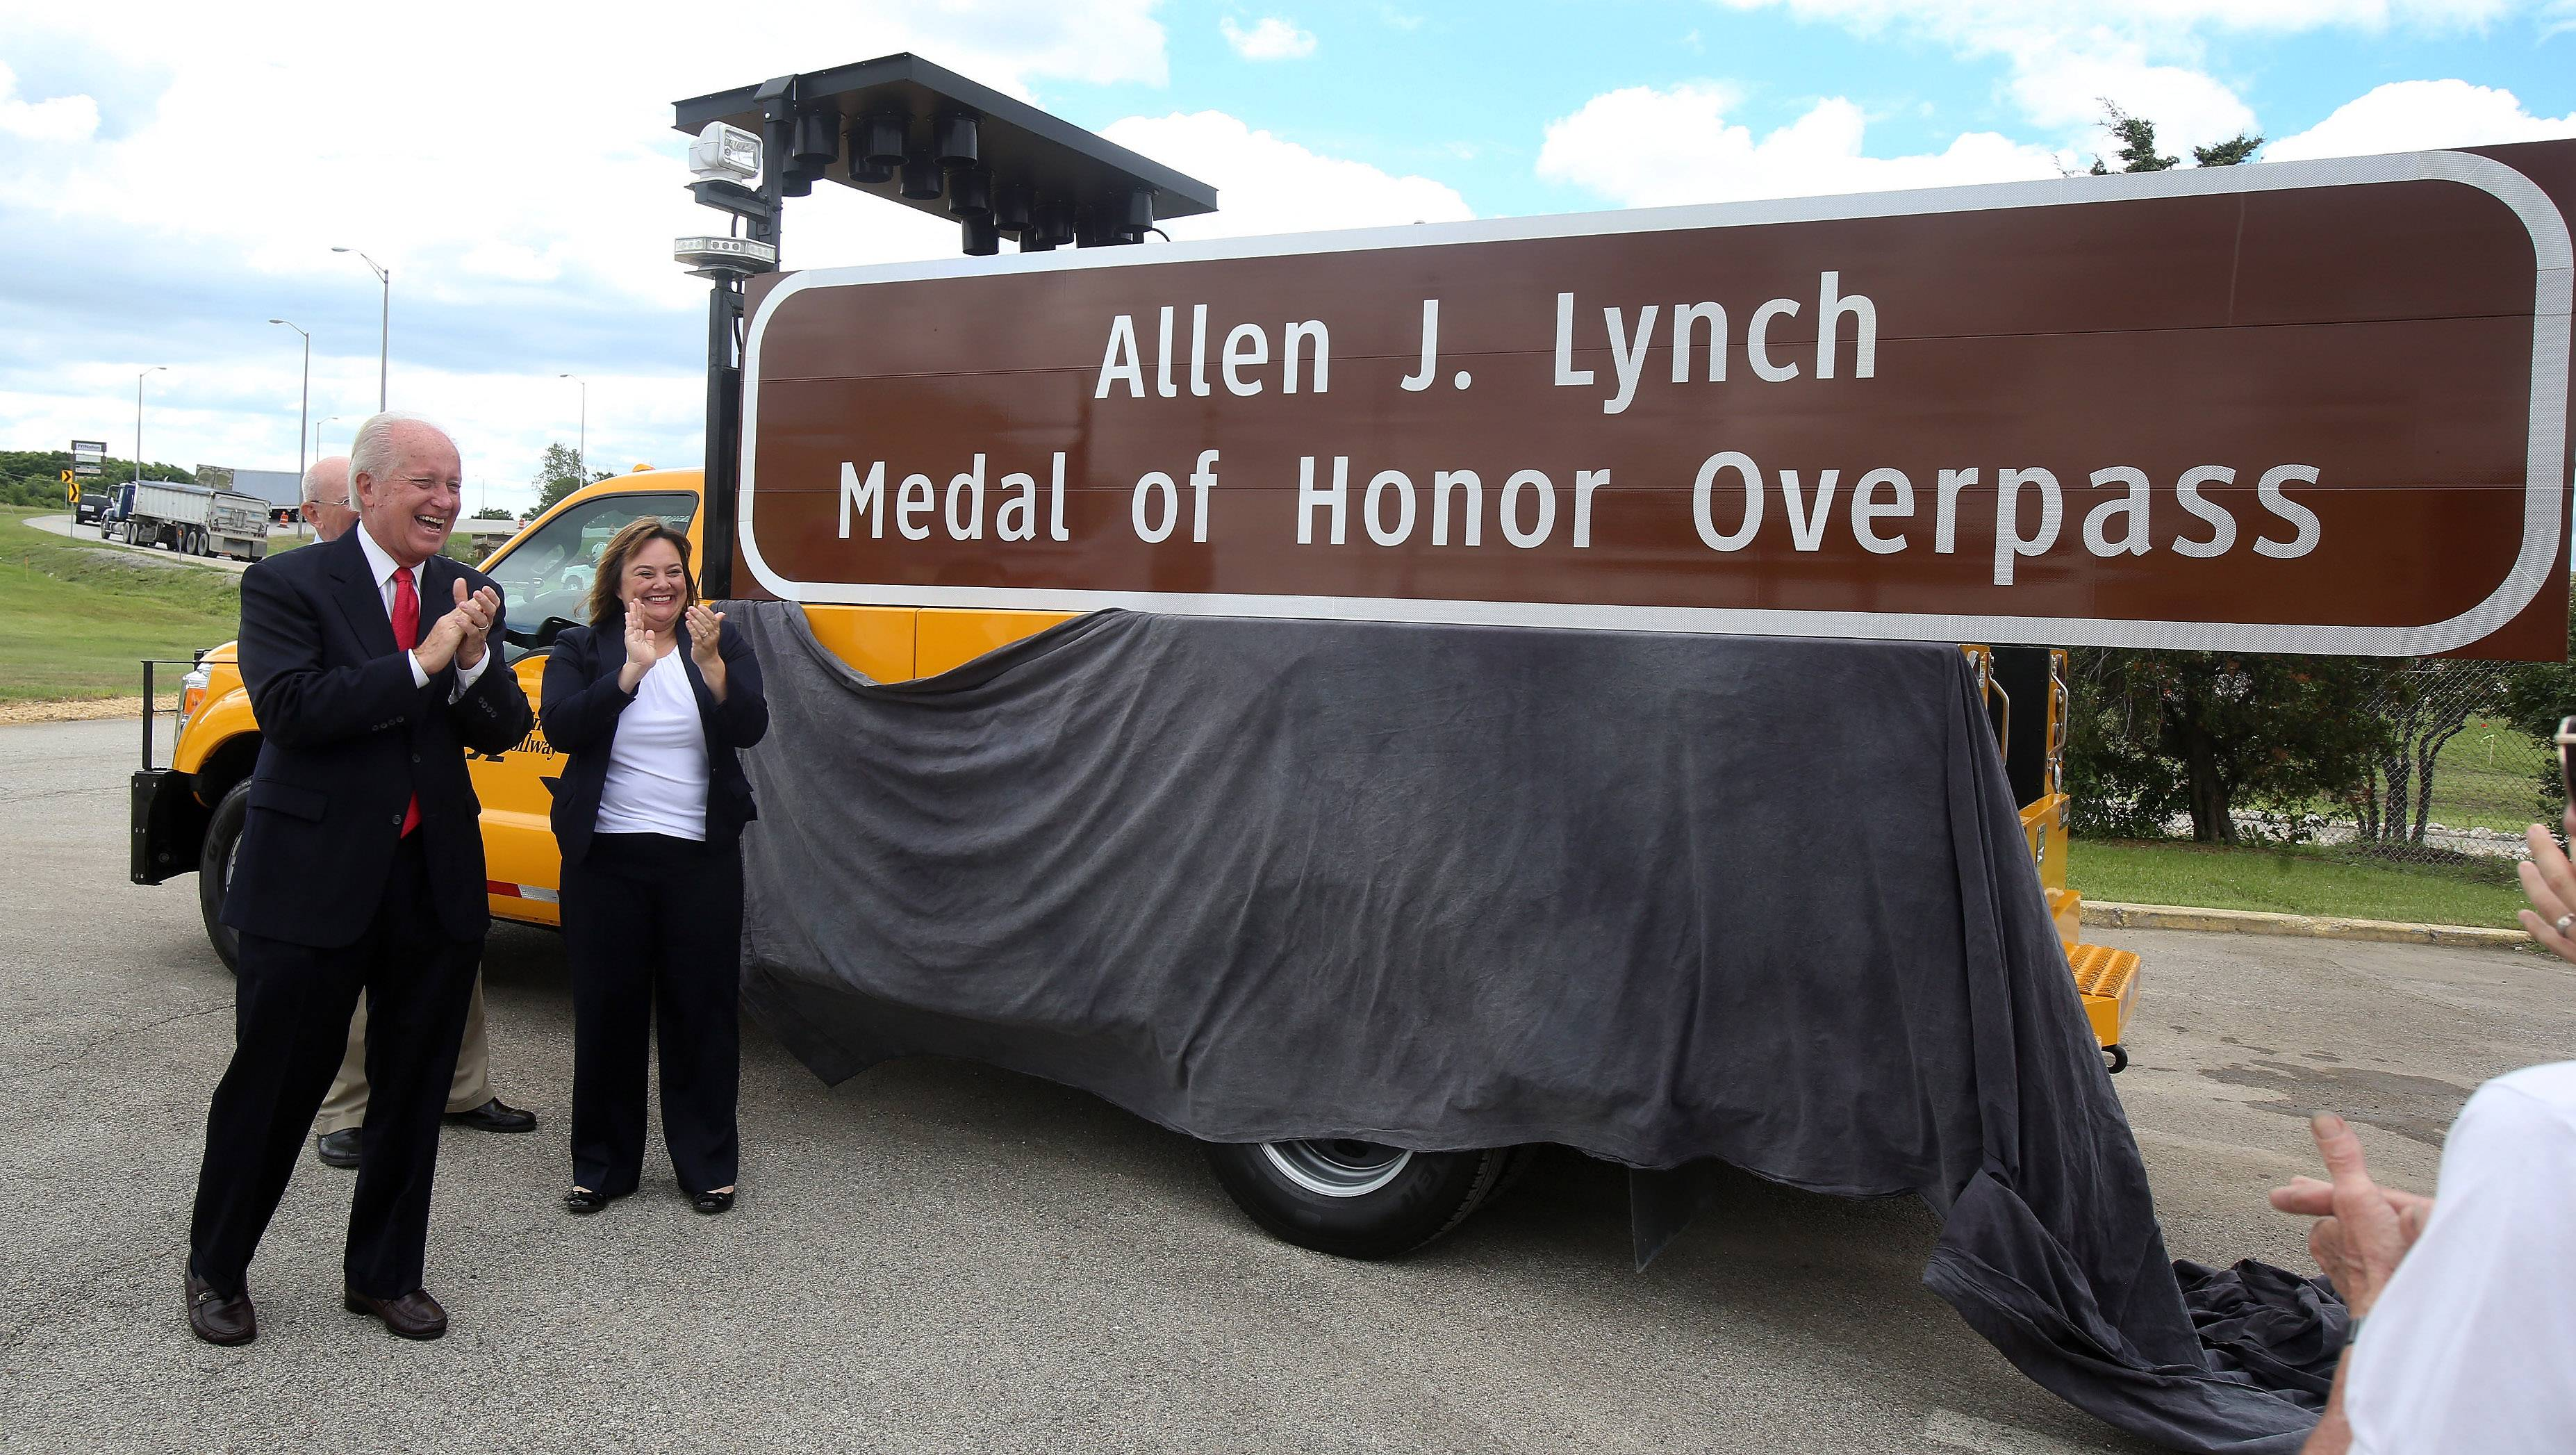 State Sen. Terry Link and Kristi Lafleur, executive director of the Illinois State Toll Highway Authority, applaud the sign marking the Allen J. Lynch Medal of Honor Overpass at Grand Avenue and the Tri-State Tollway in Gurnee. Lynch received the Medal of Honor for acts of valor during the Vietnam War.